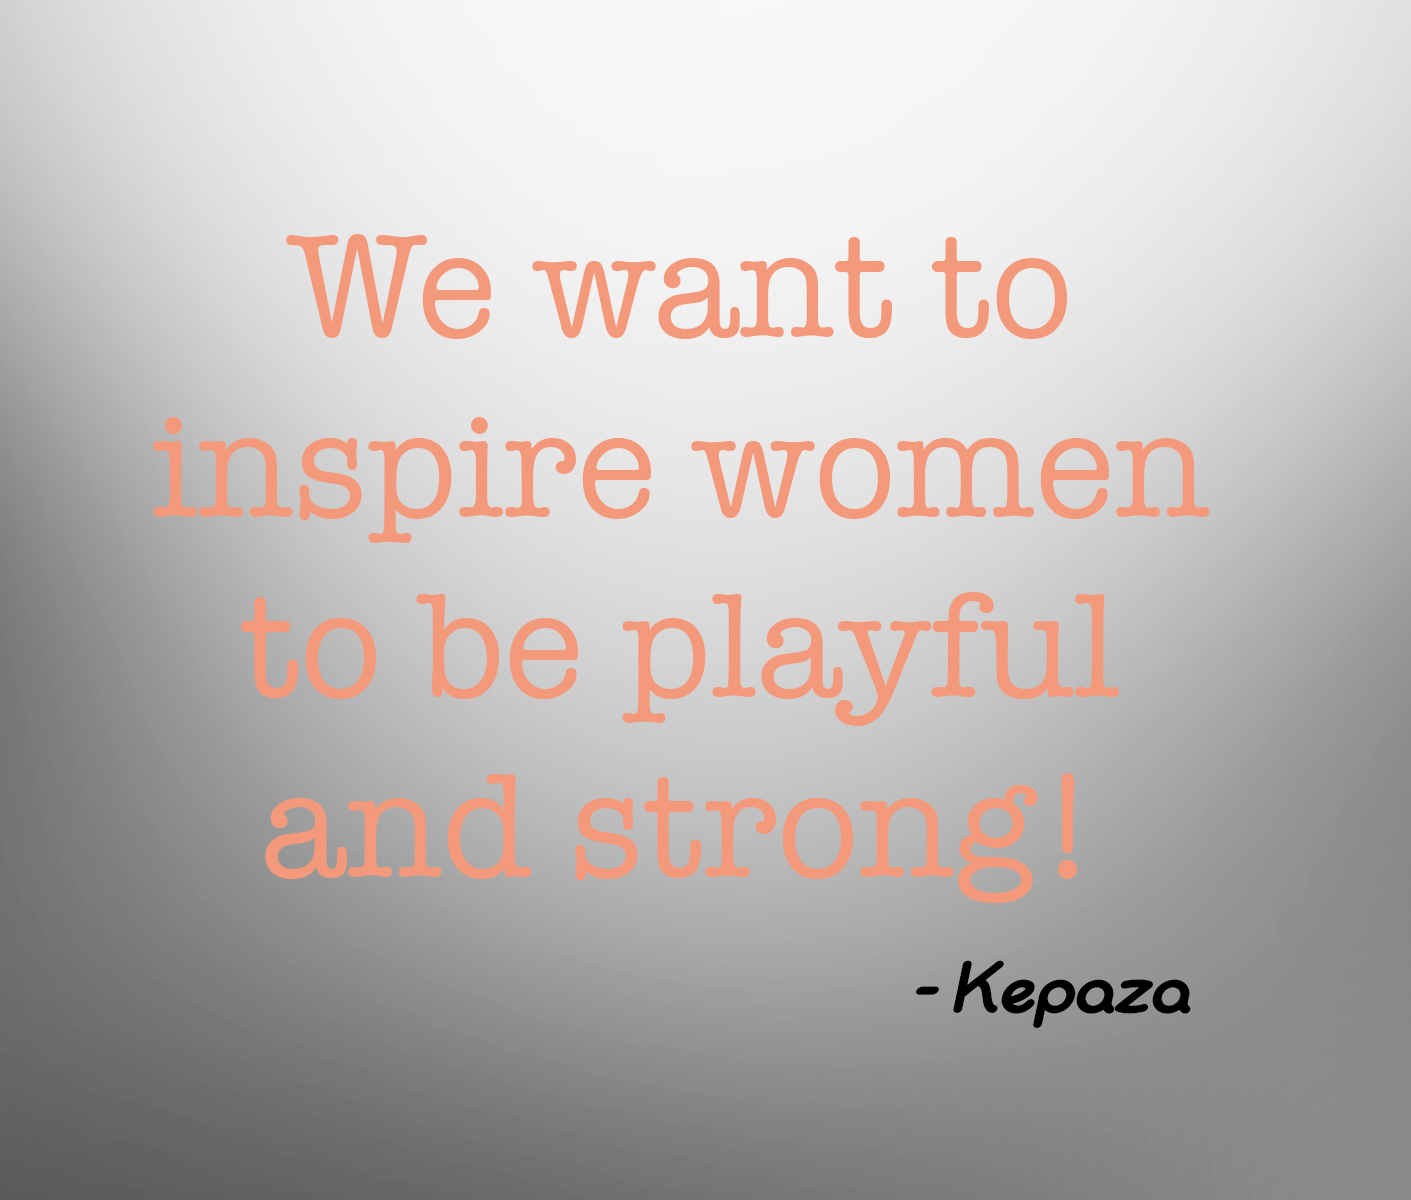 Kepaza Quote - We want to inspire women to be playful and strong